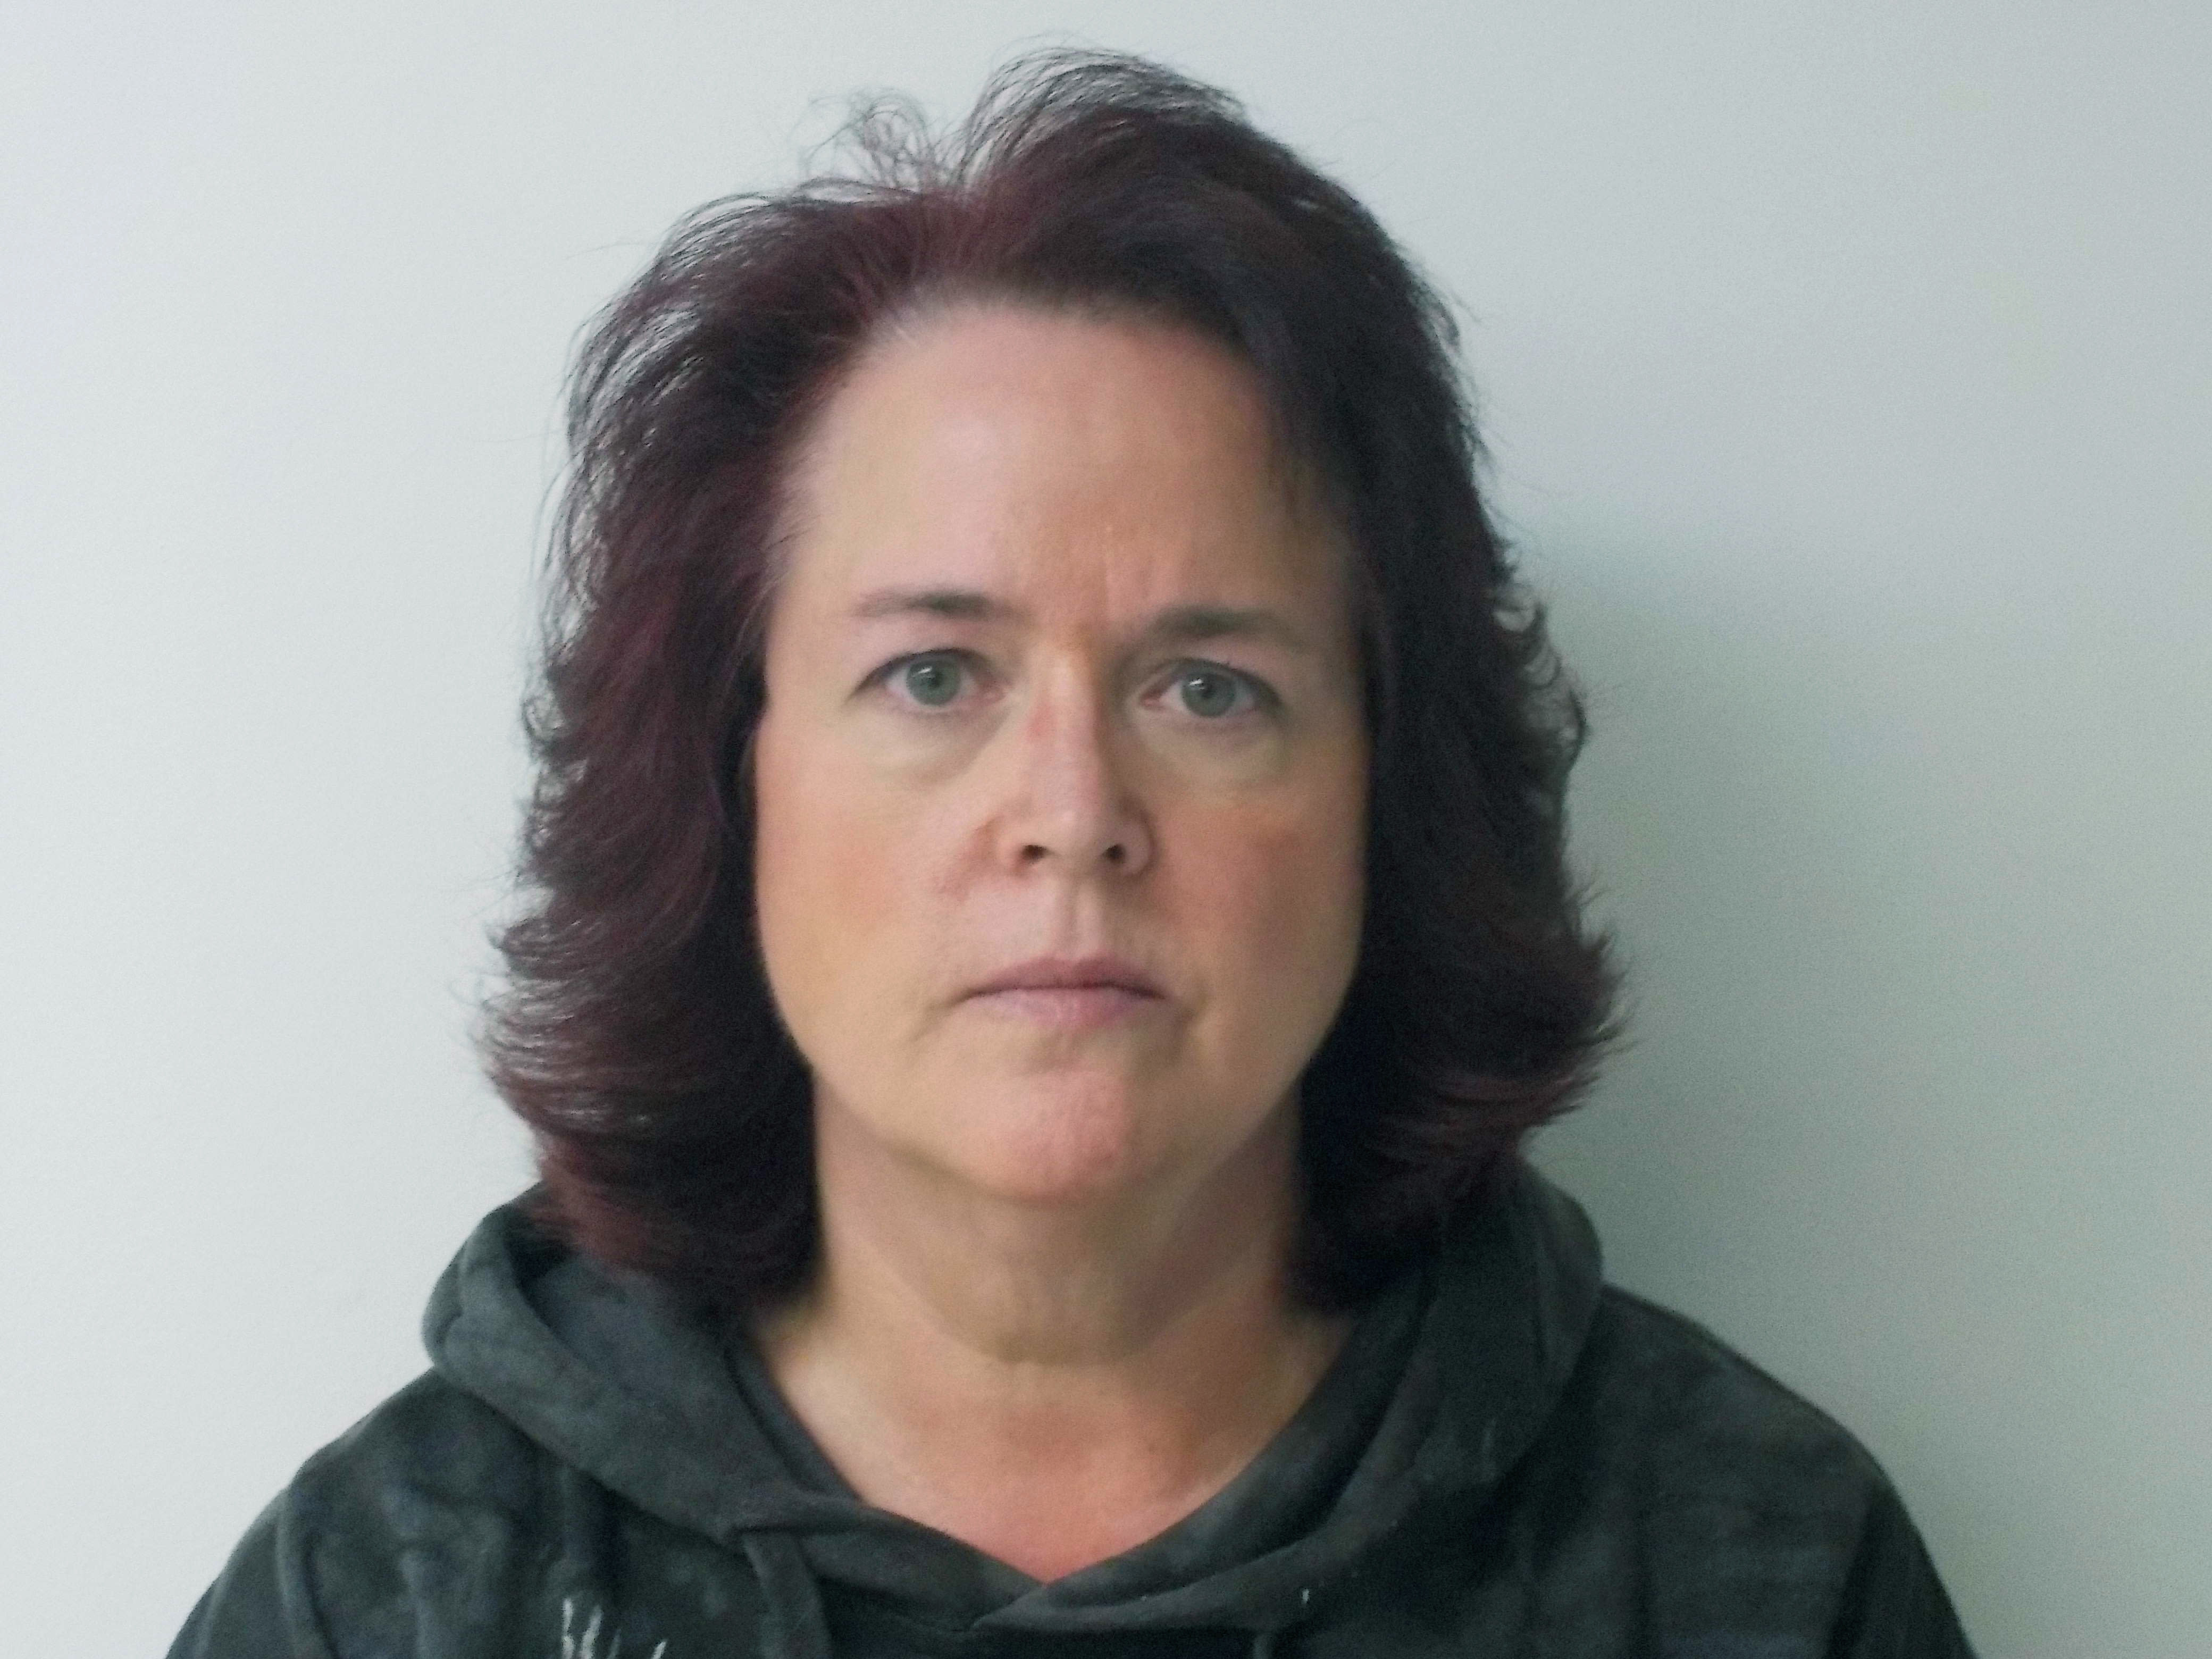 This Friday, Oct. 18, 2018 booking photo provided by New Boston Police shows Denise Atkocaitis, in New Boston, N.H. Atkocaitis, along with Thomas Atkocaitis, a married couple of New Boston, have been arrested and face several charges for allegedly constraining a girl to a small basement room for two months. (New Boston Police via AP)